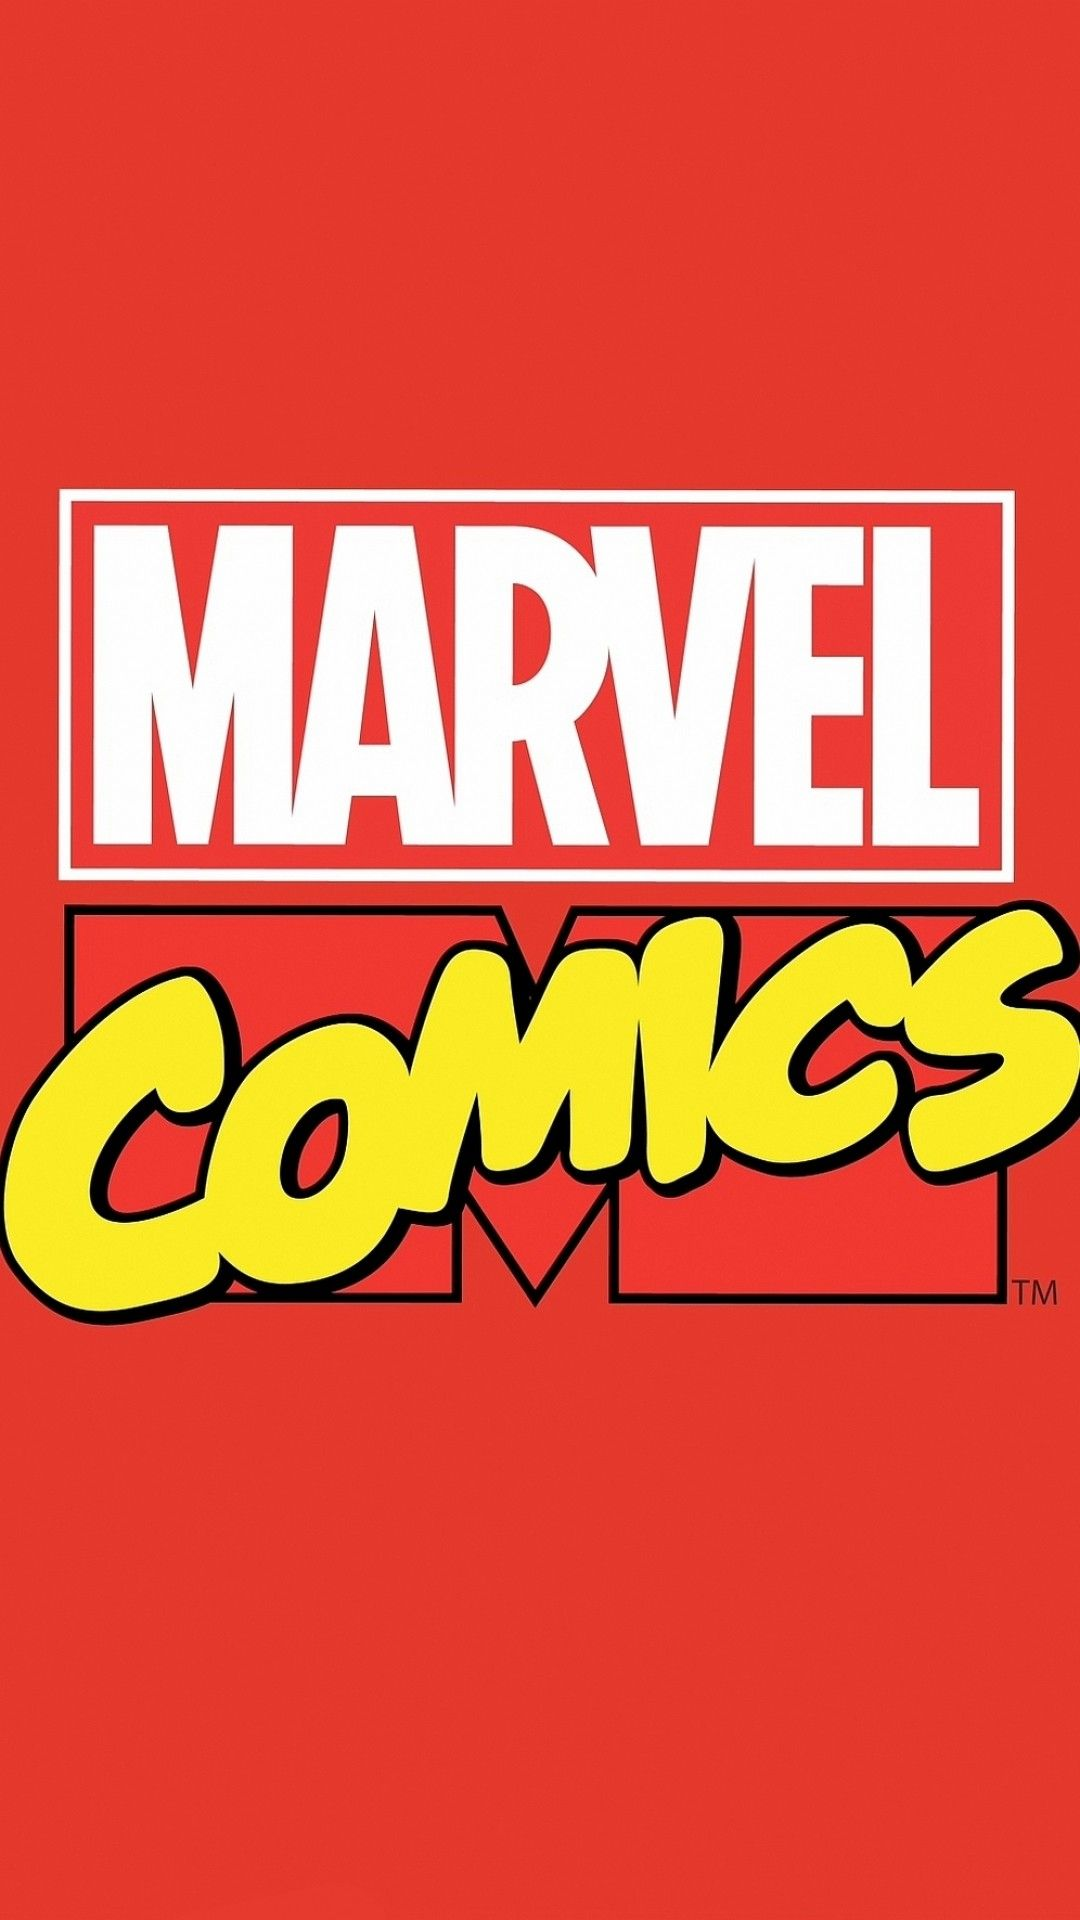 Marvel Logo Iphone Wallpapers Top Free Marvel Logo Iphone Backgrounds Wallpaperaccess